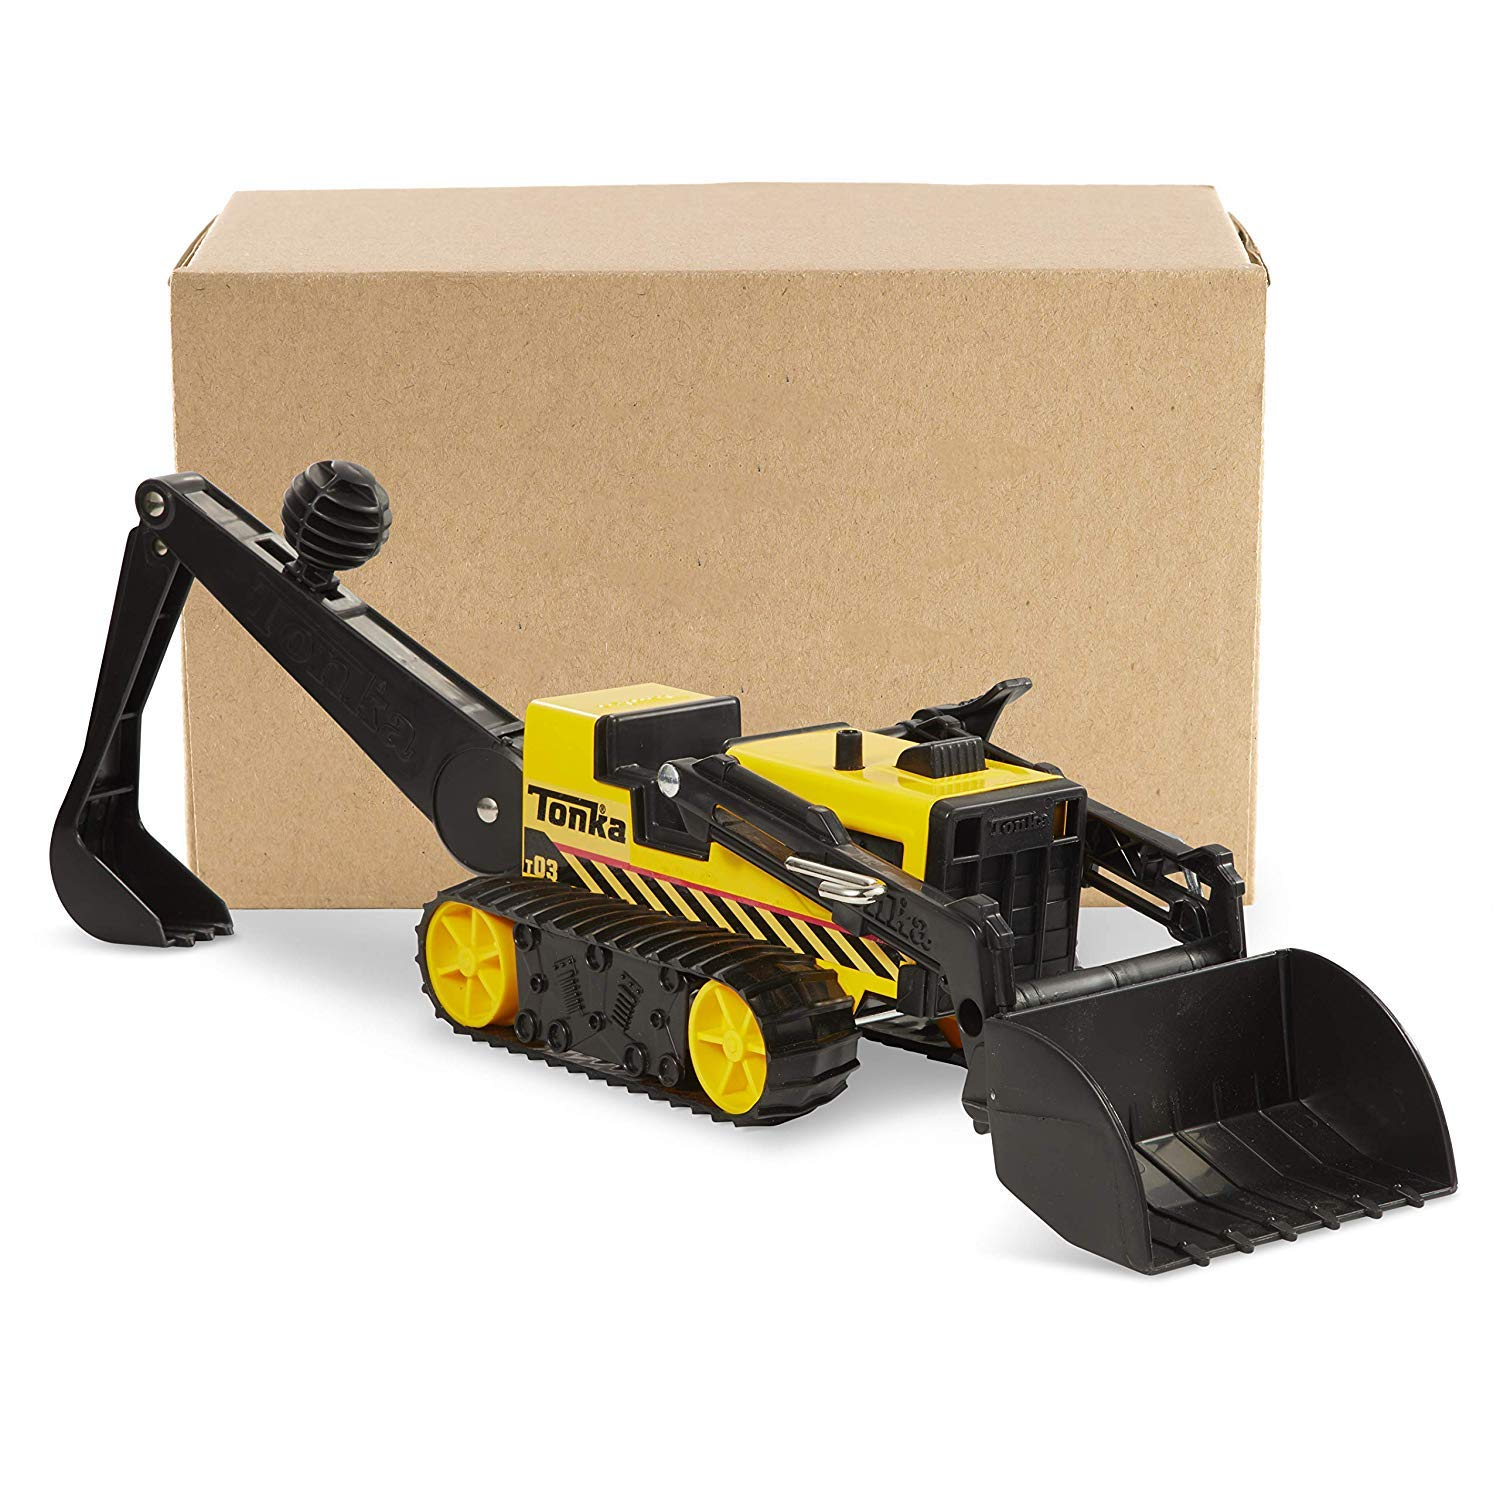 New Tonka Steel Trencher Vehicle Free Shipping